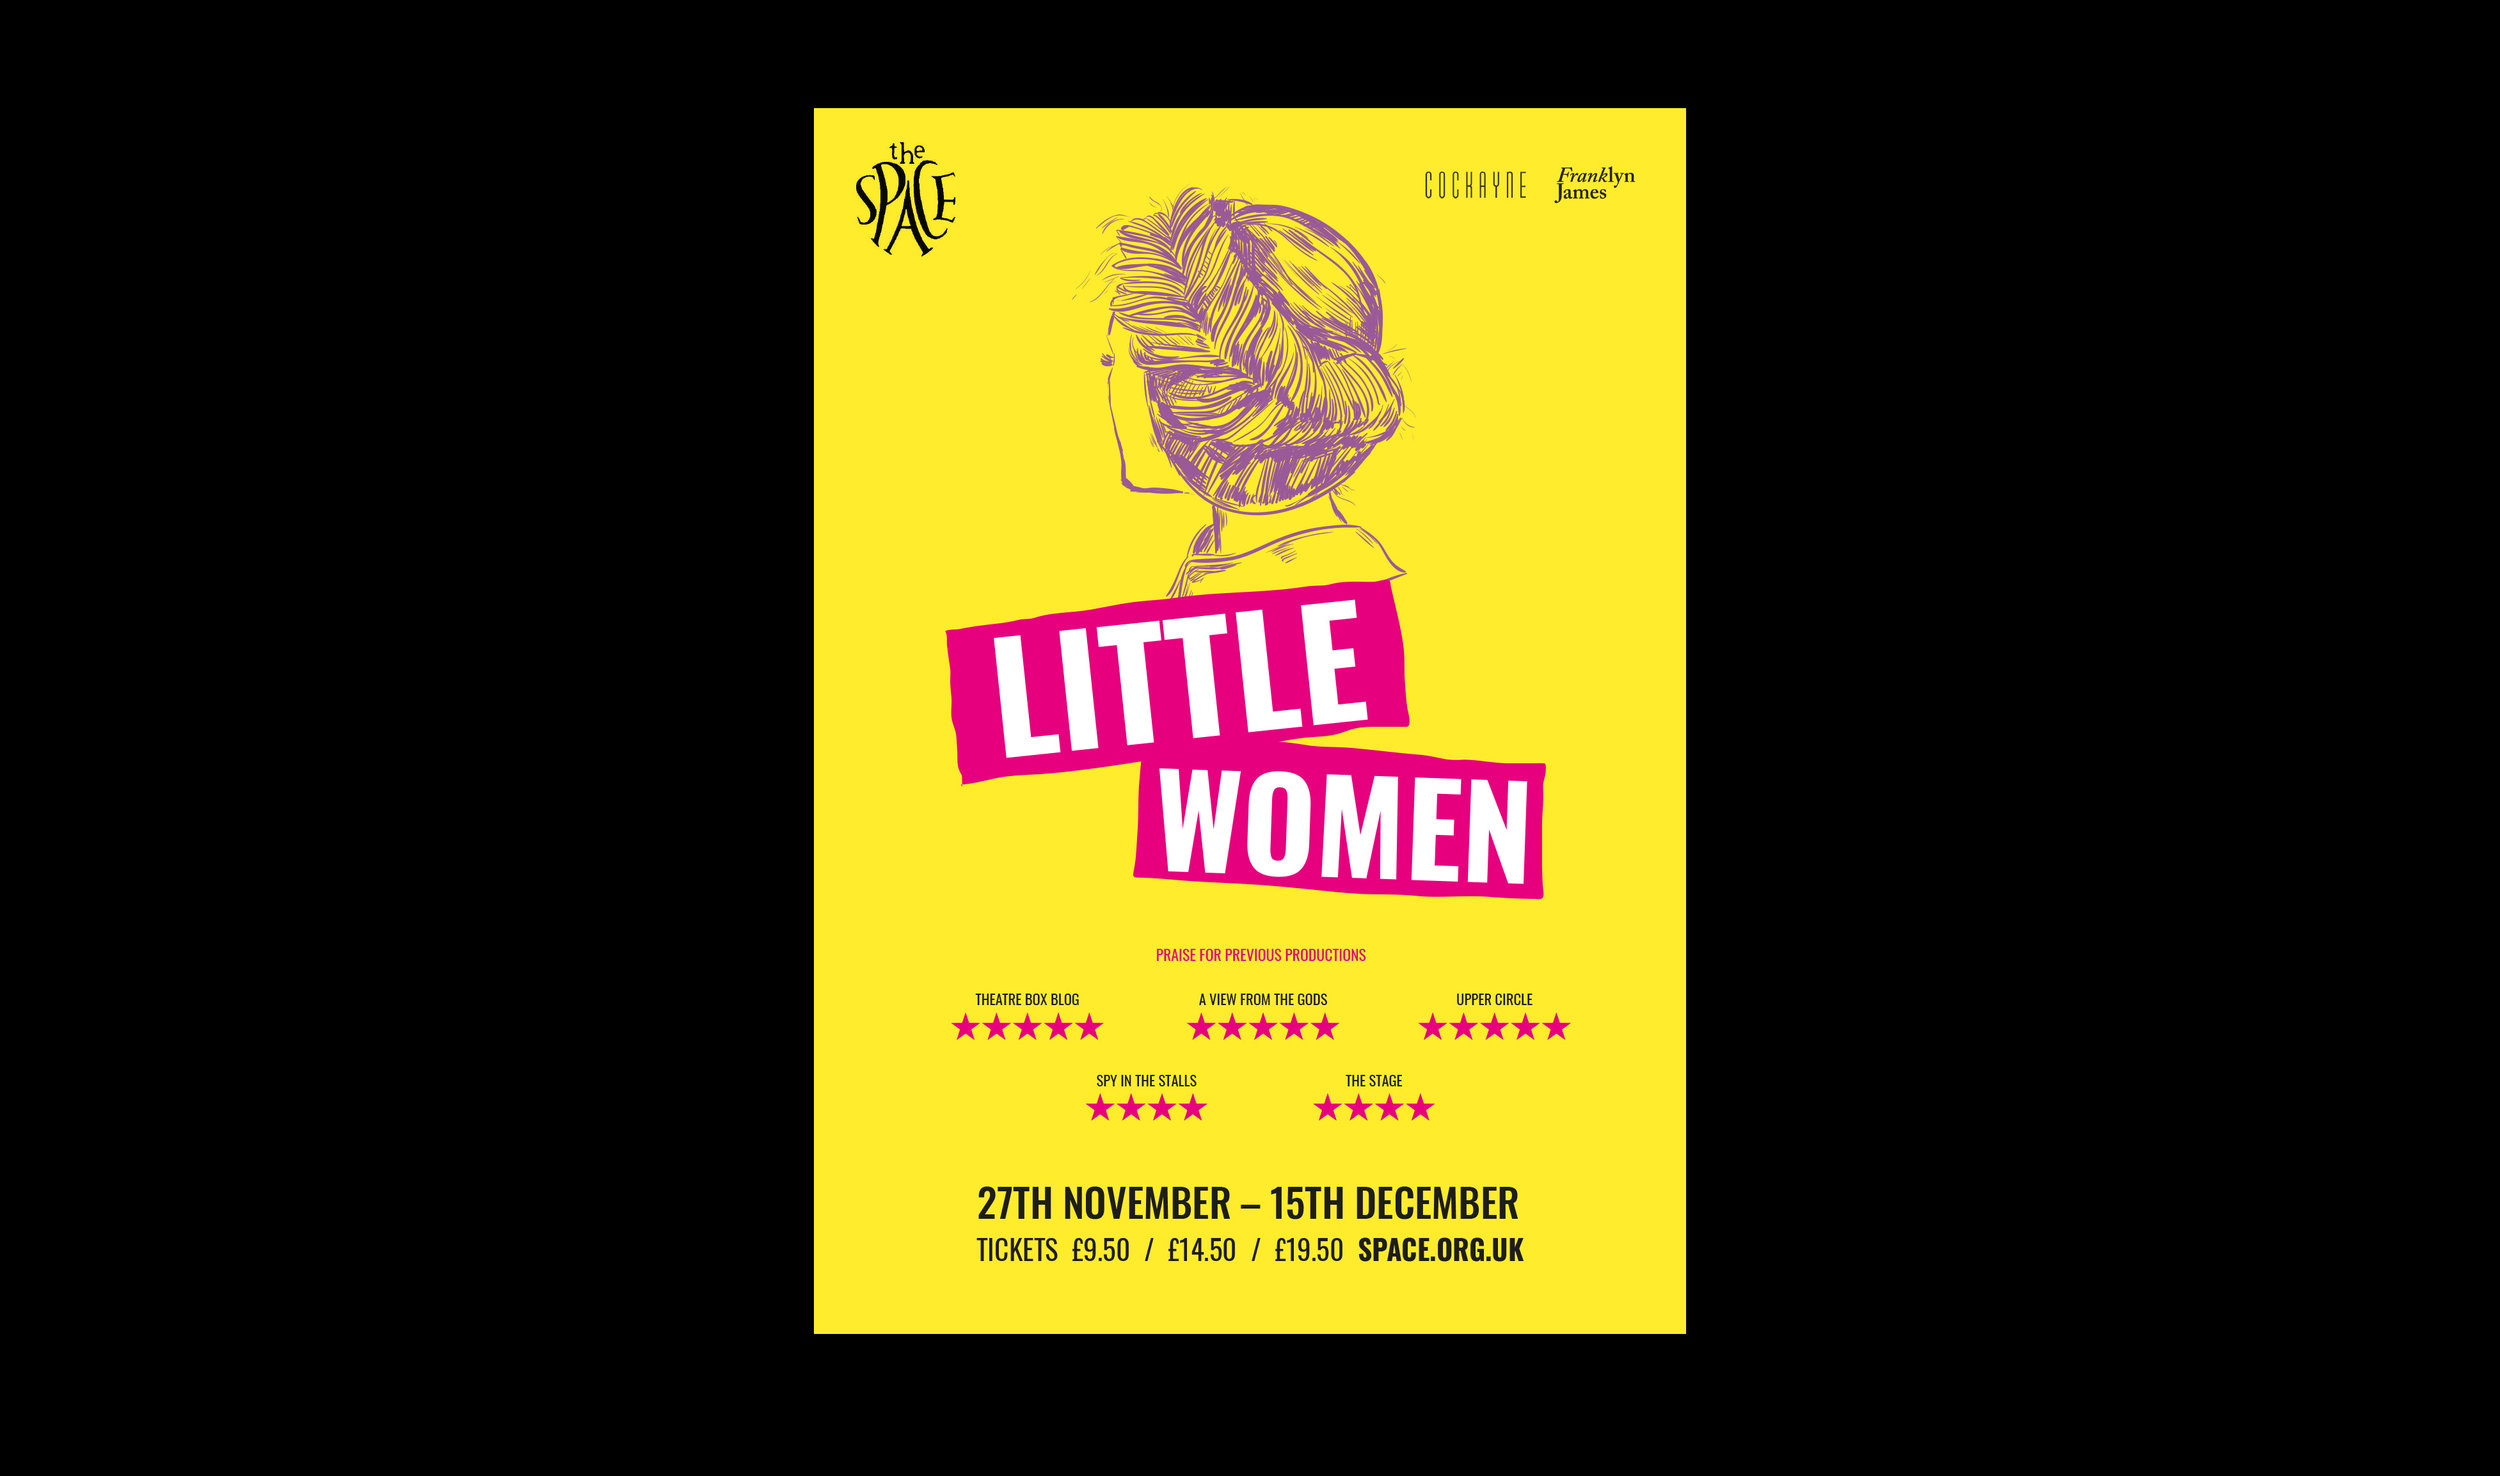 Little women poster.jpg